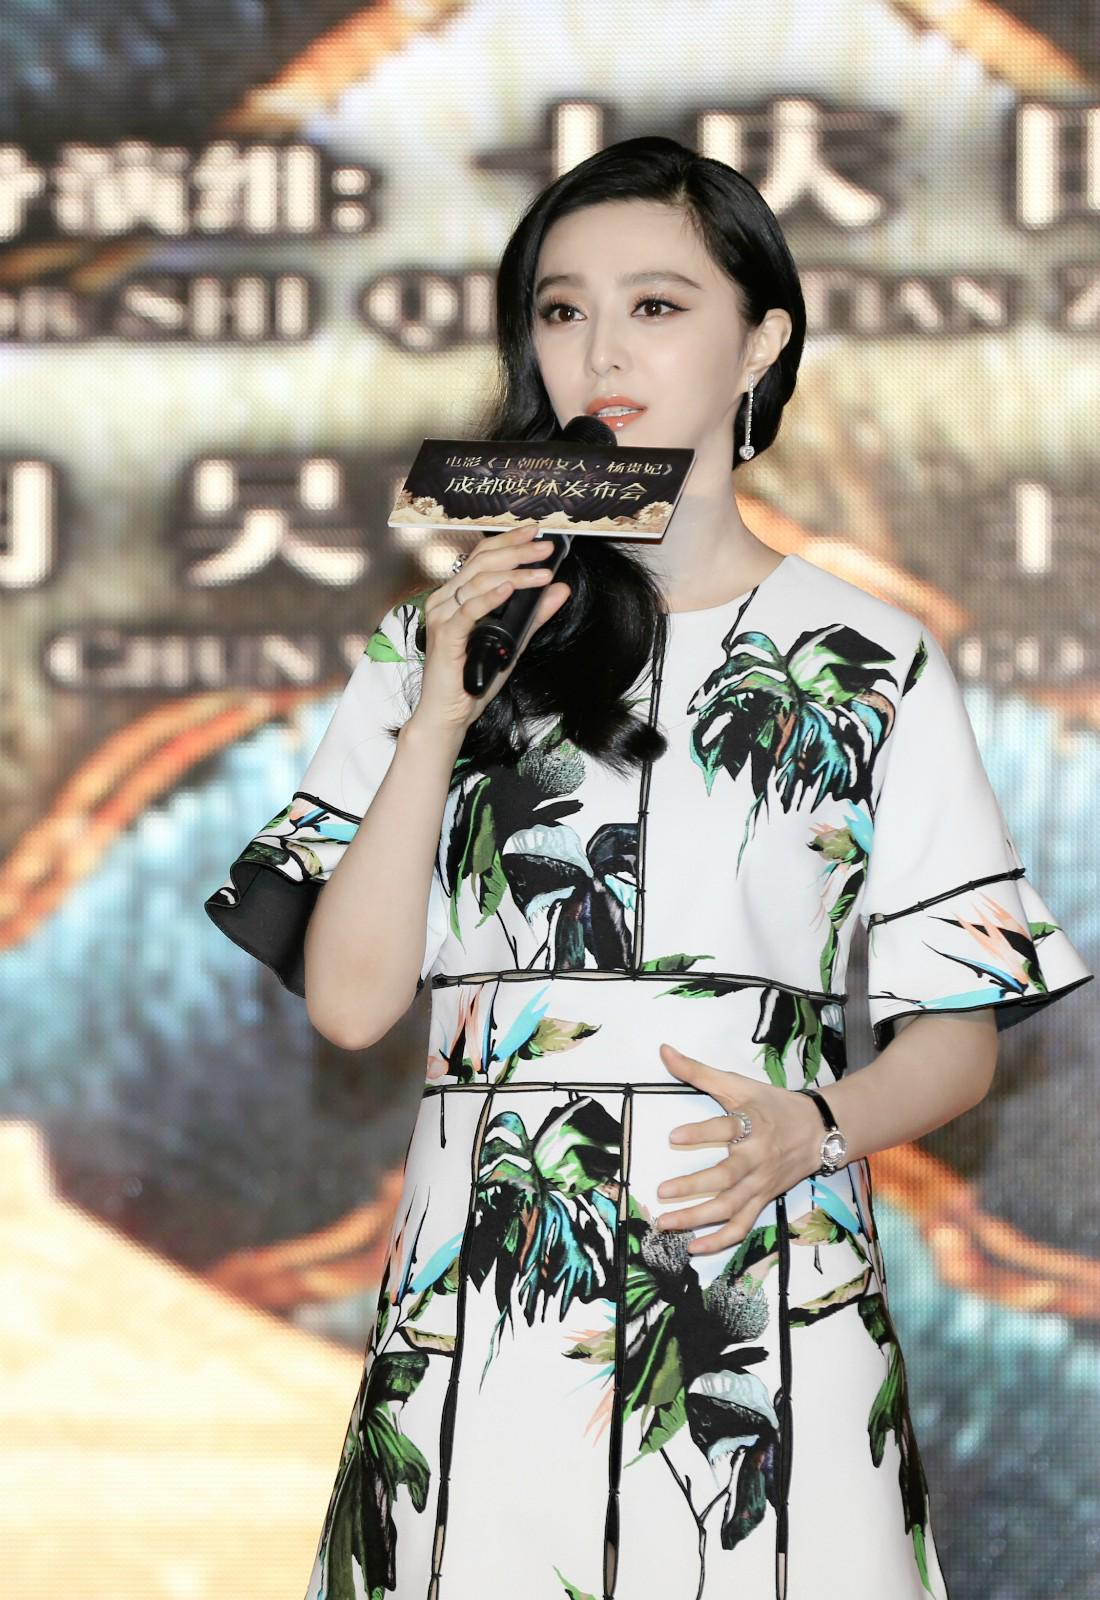 """RT @FanBingbingNews: """"Lady of the Dynasty"""" premiered in Chengdu, China August 2, 2015. @Chopard @proenzaschouler @Fashion_Critic_ http://t.…"""